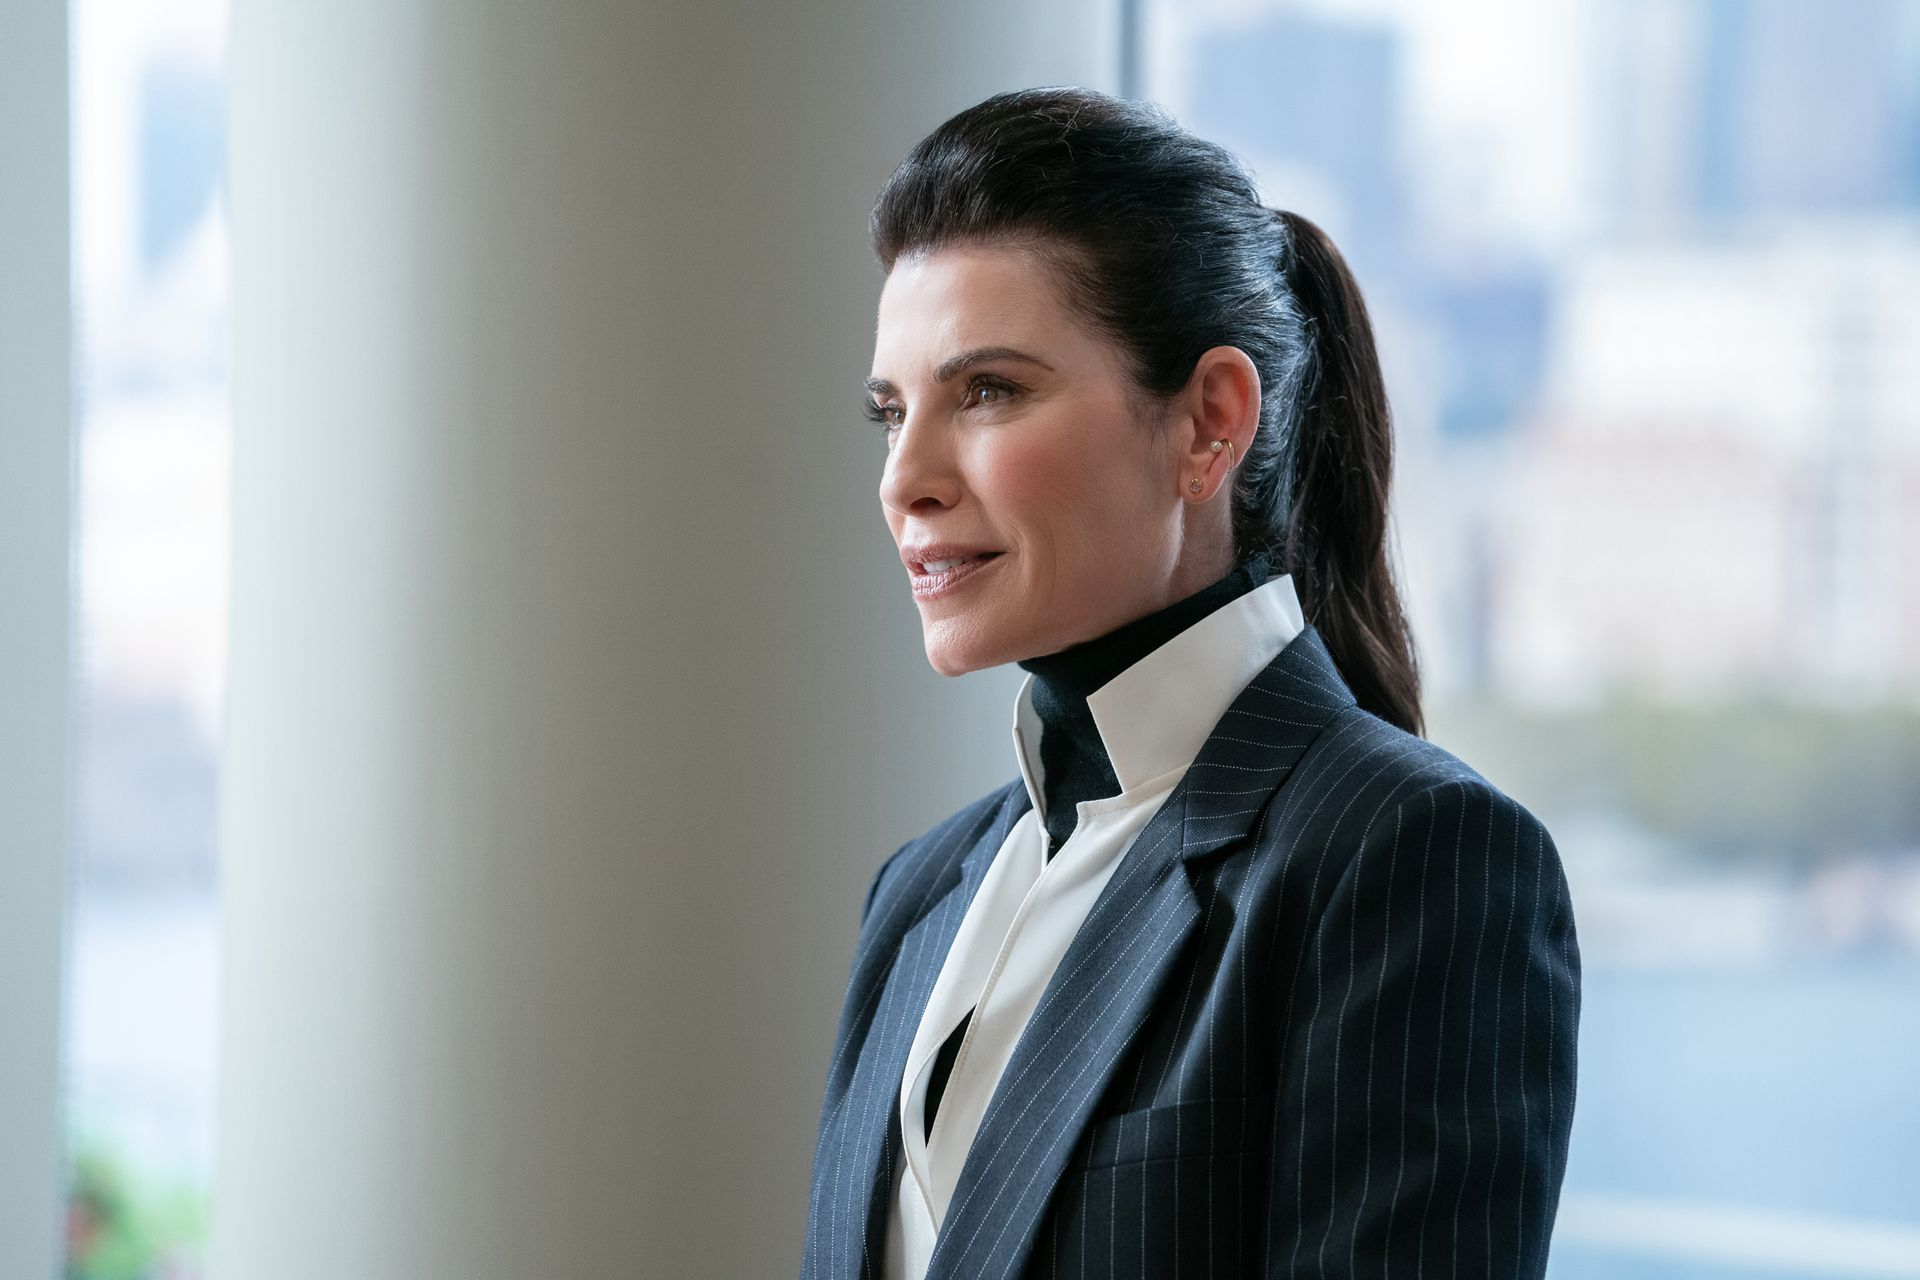 The Morning Show. Julianna Margulies